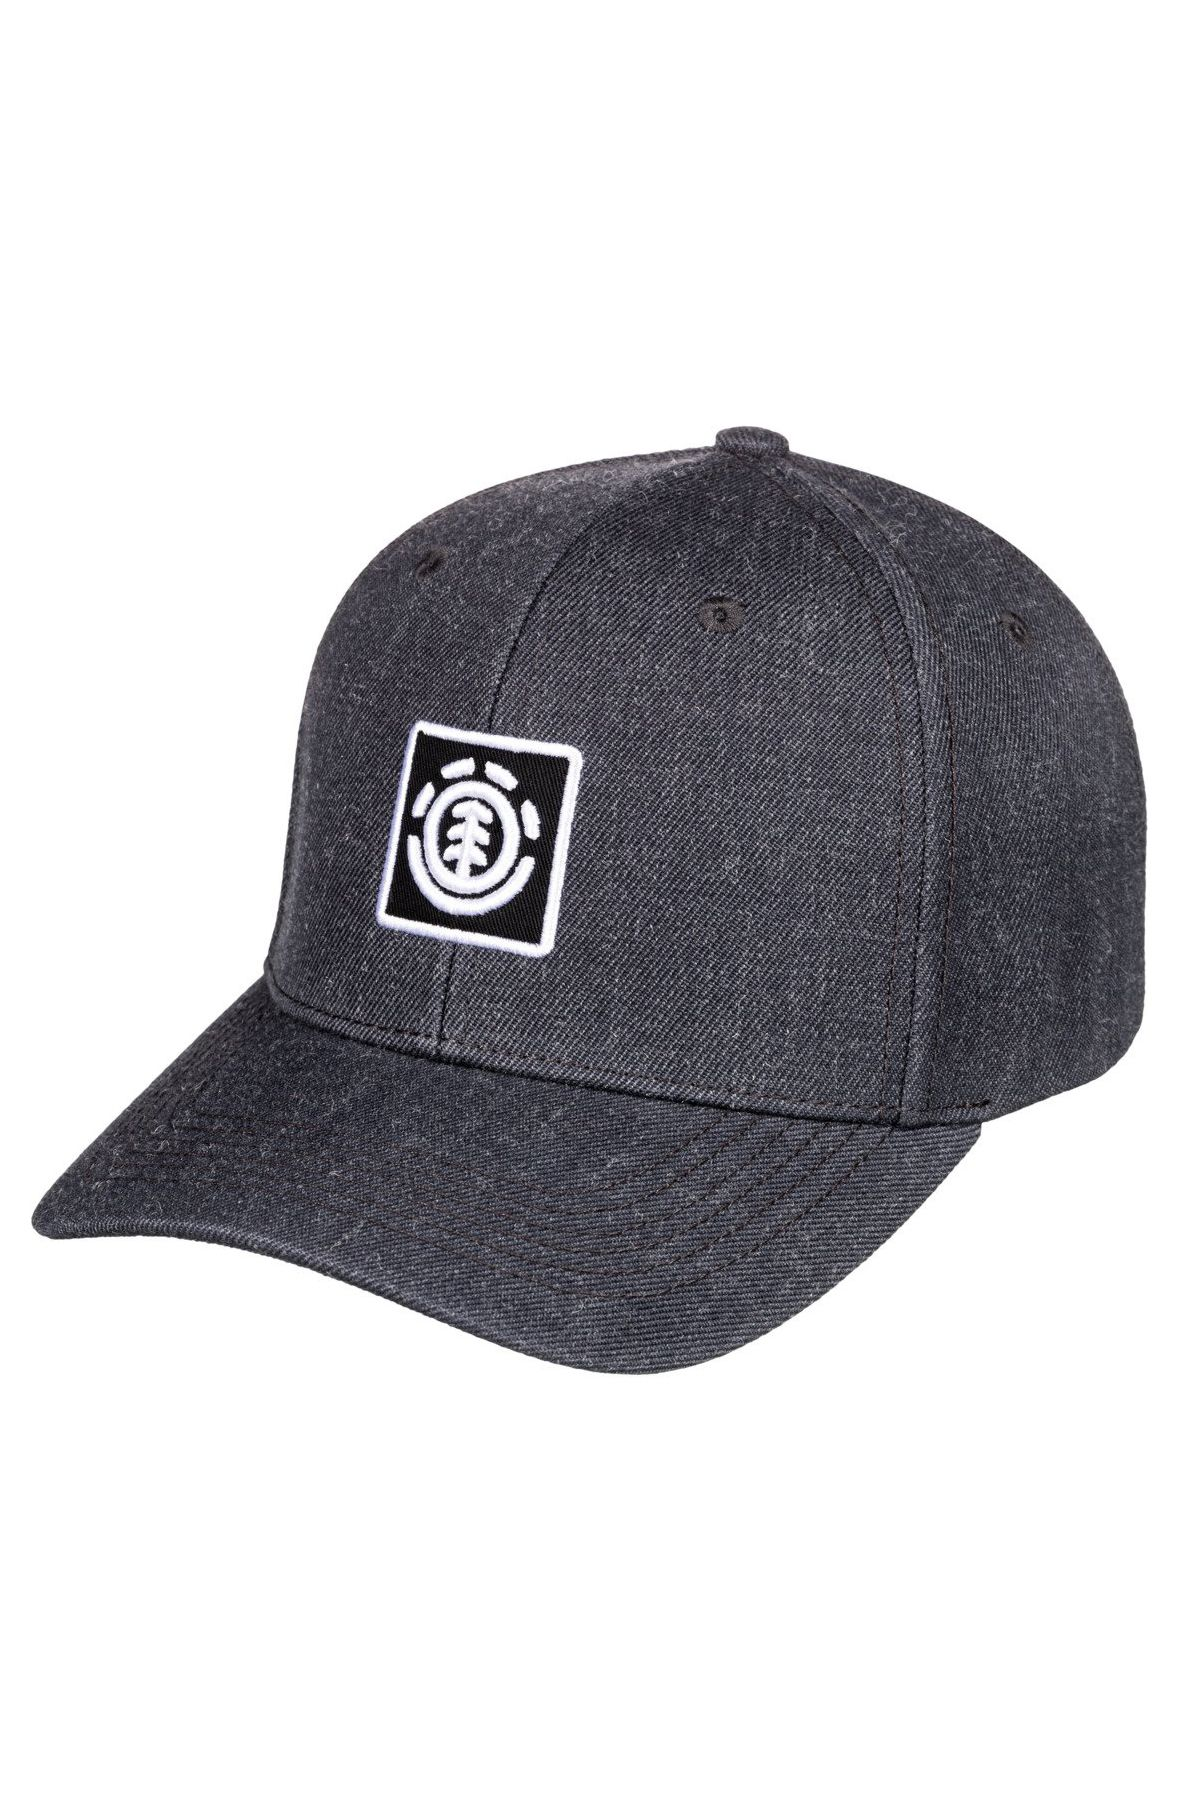 Bone Element TREELOGO CAP Charcoal Heather